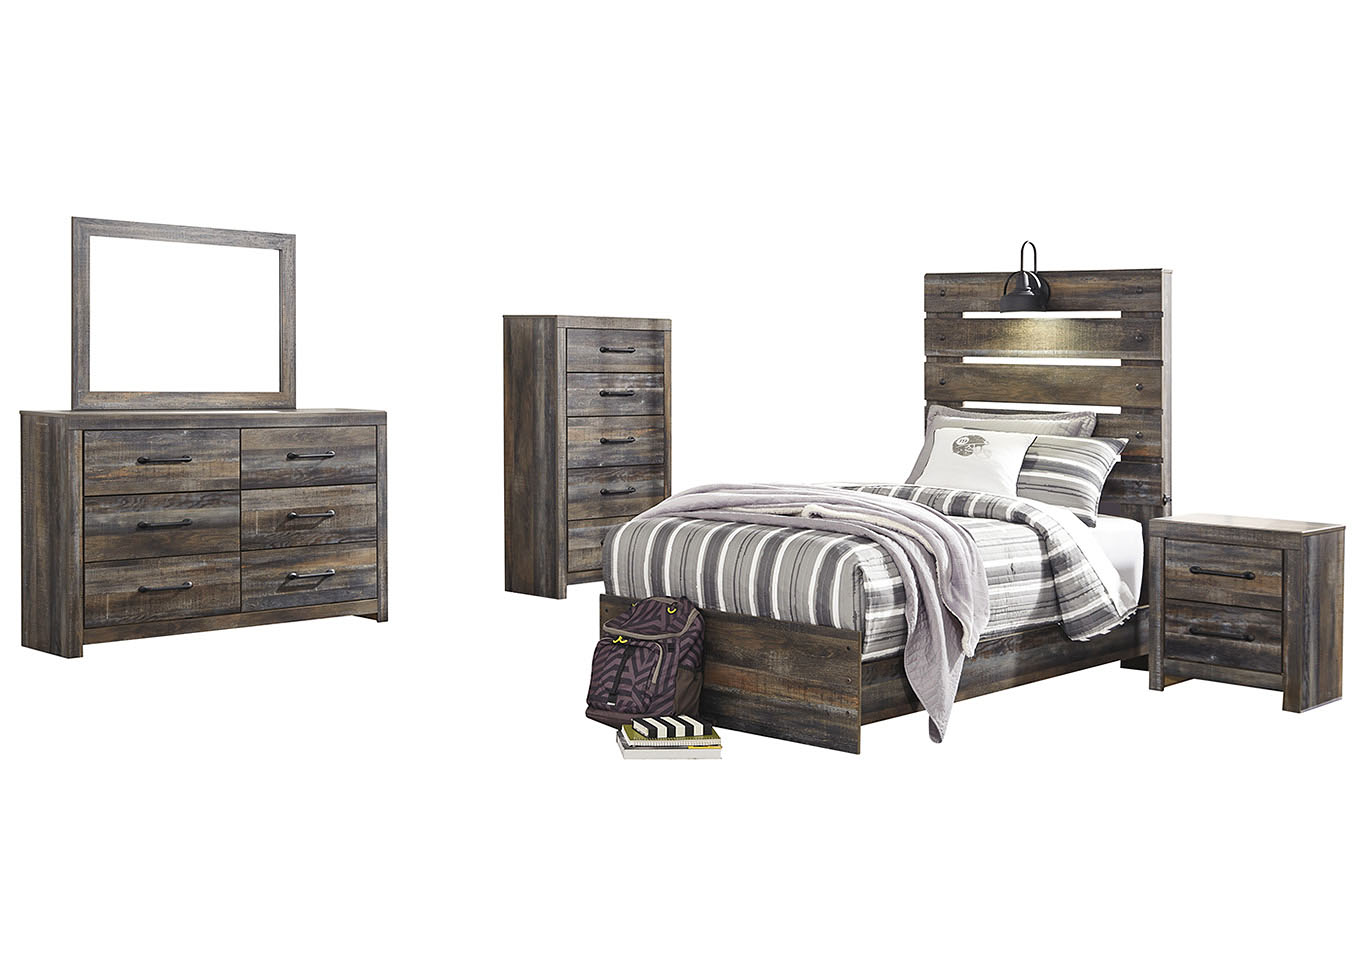 Drystan Twin Panel Bed w/Dresser & Mirror,Signature Design By Ashley